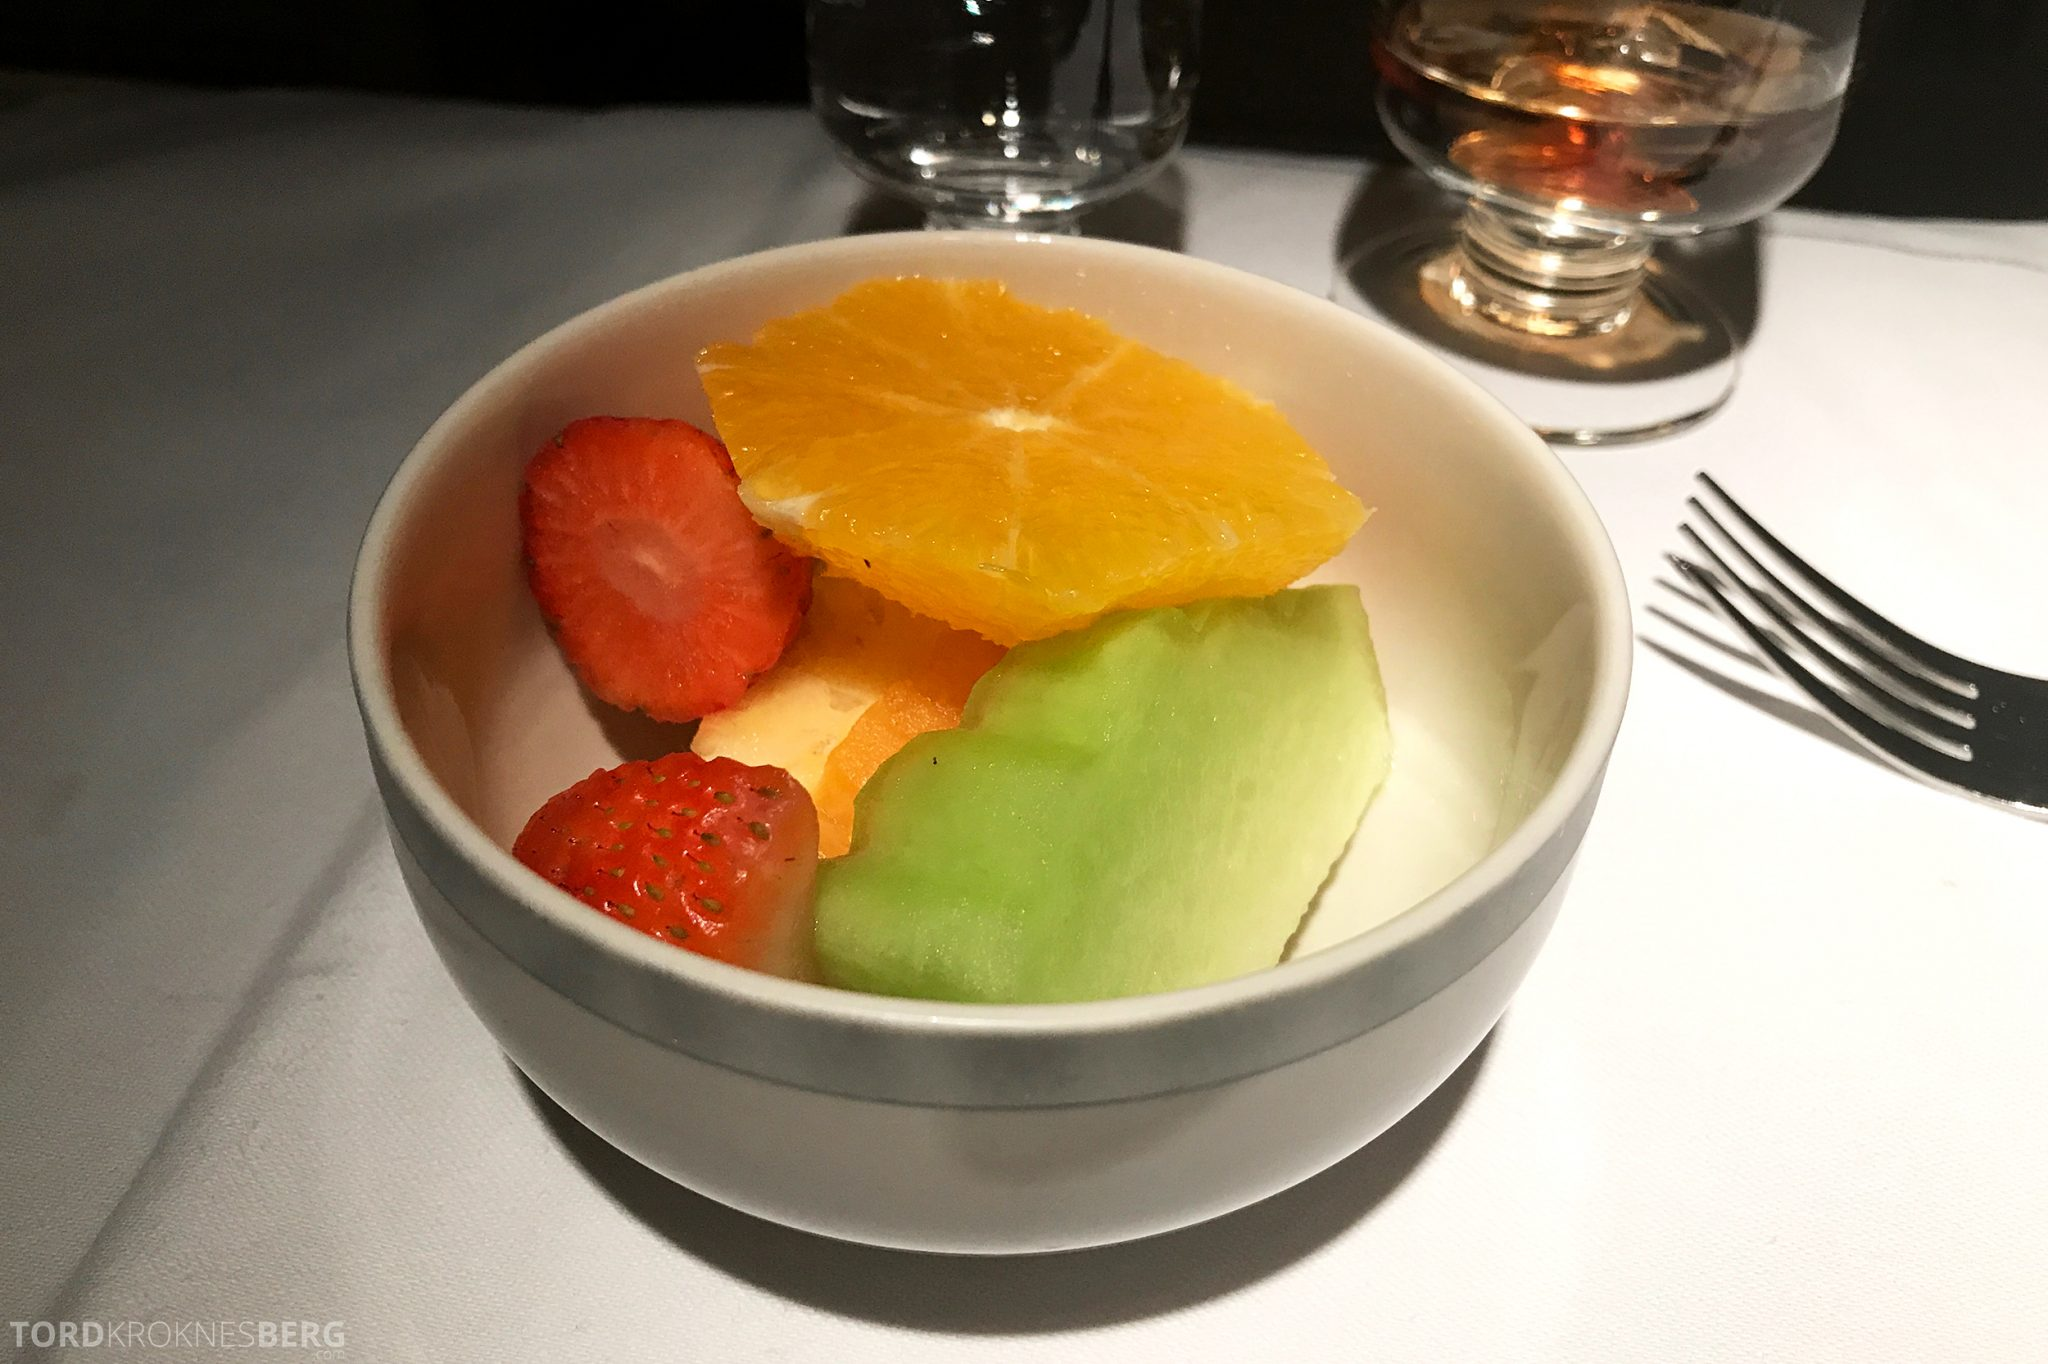 Singapore Airlines Business Class Wellington Canberra Changi frukt dessert